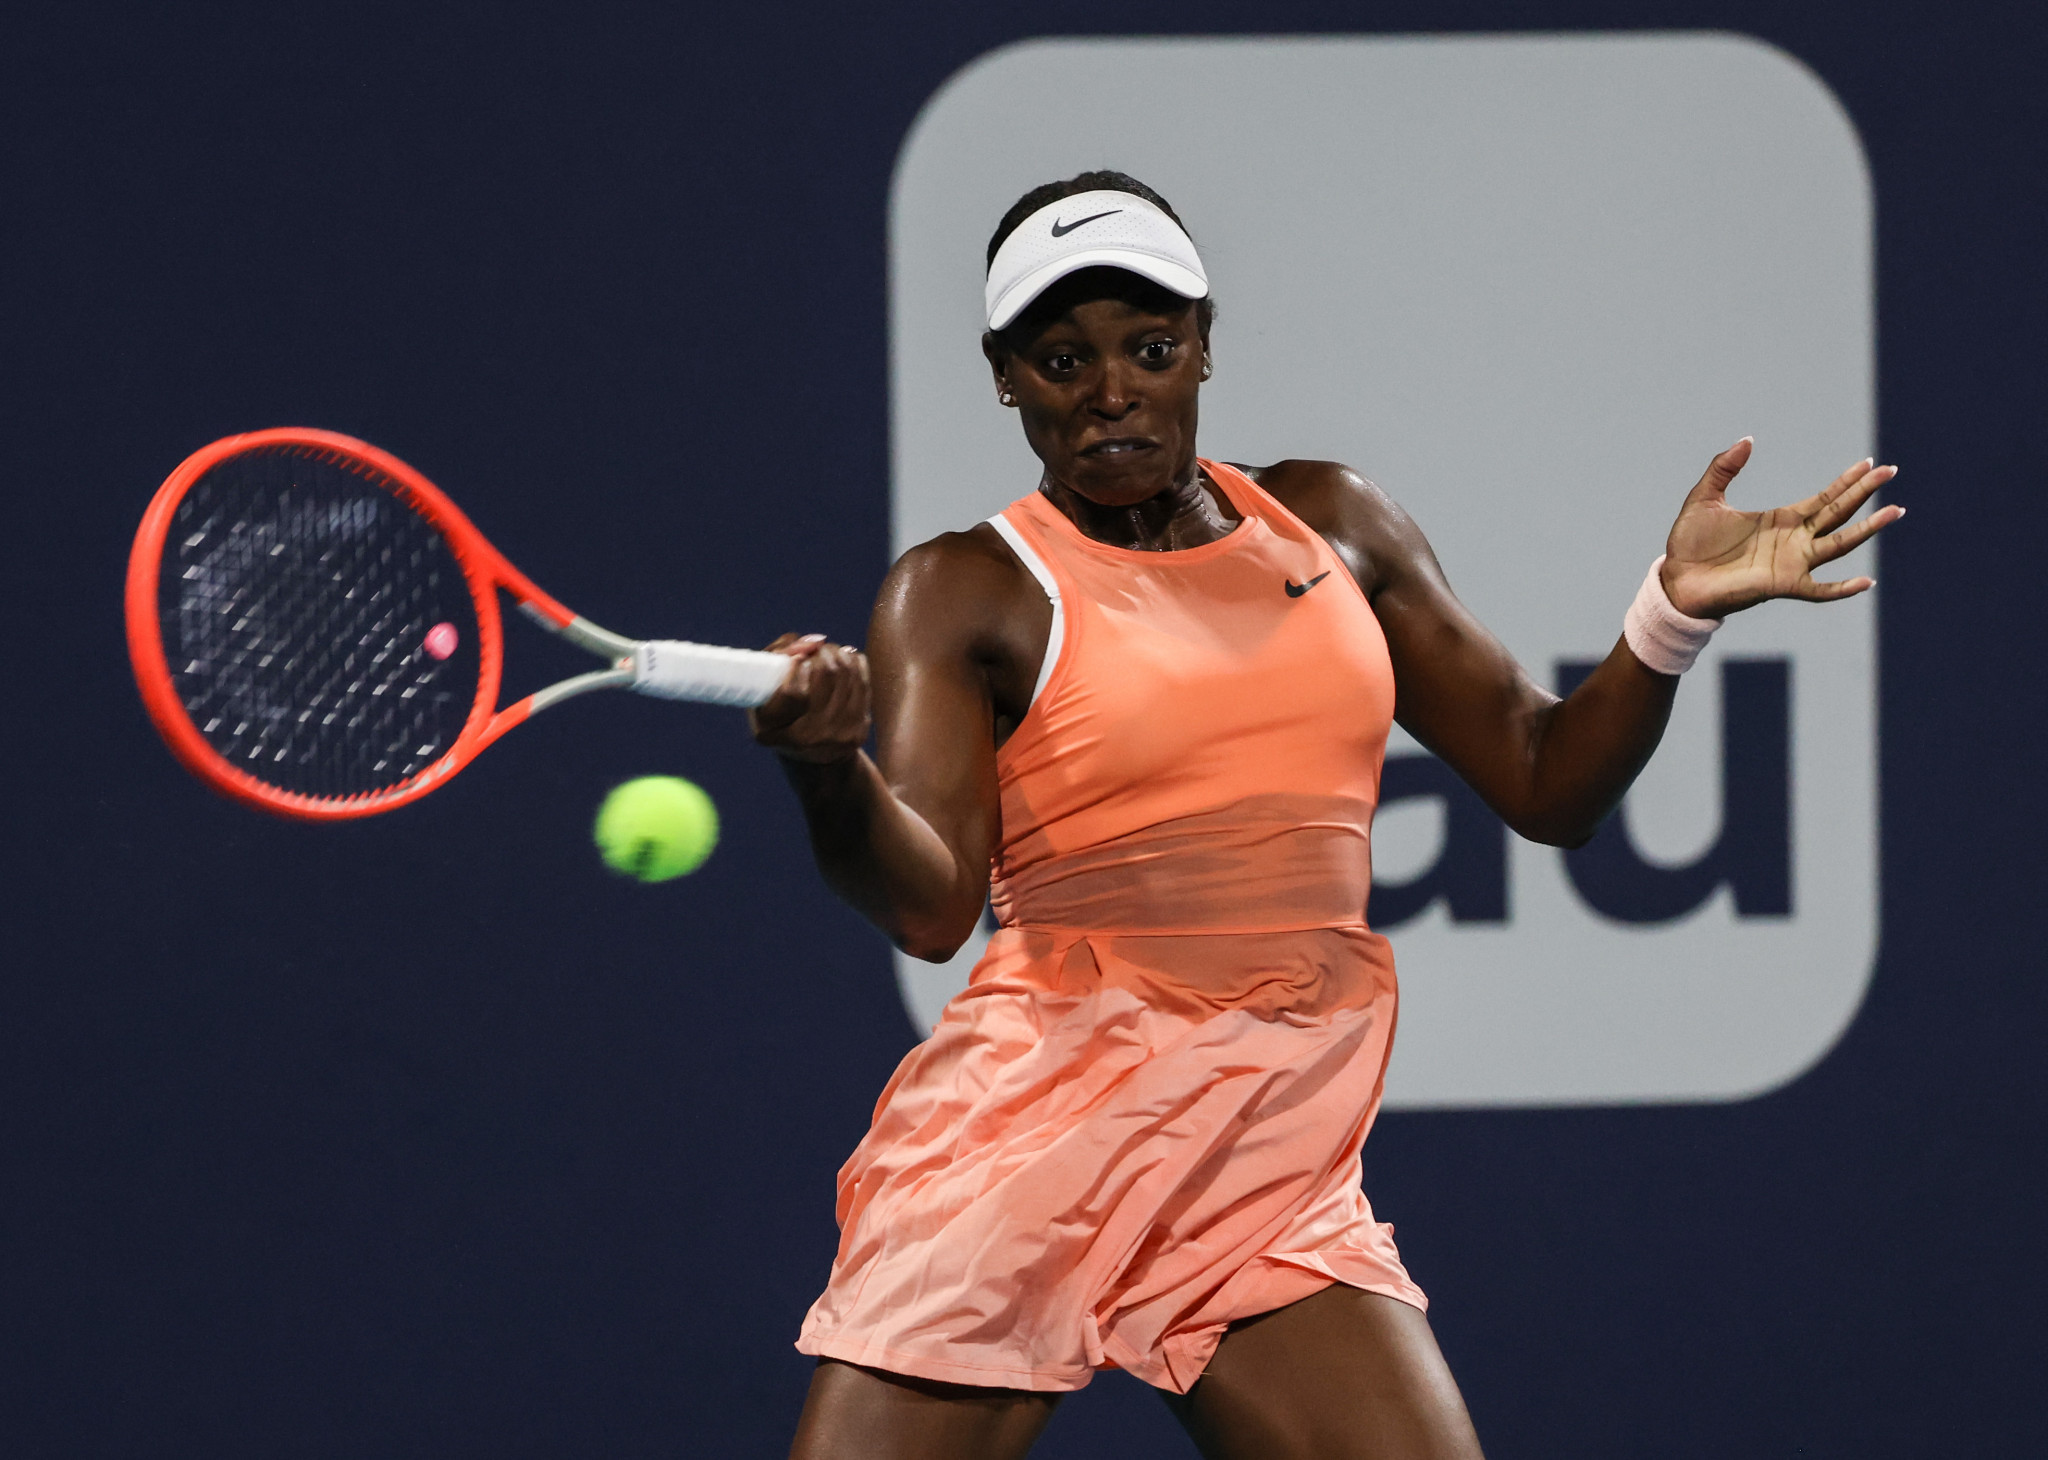 Stephens battles back to seal first win of 2021 at Miami Open, angry Pospisil out